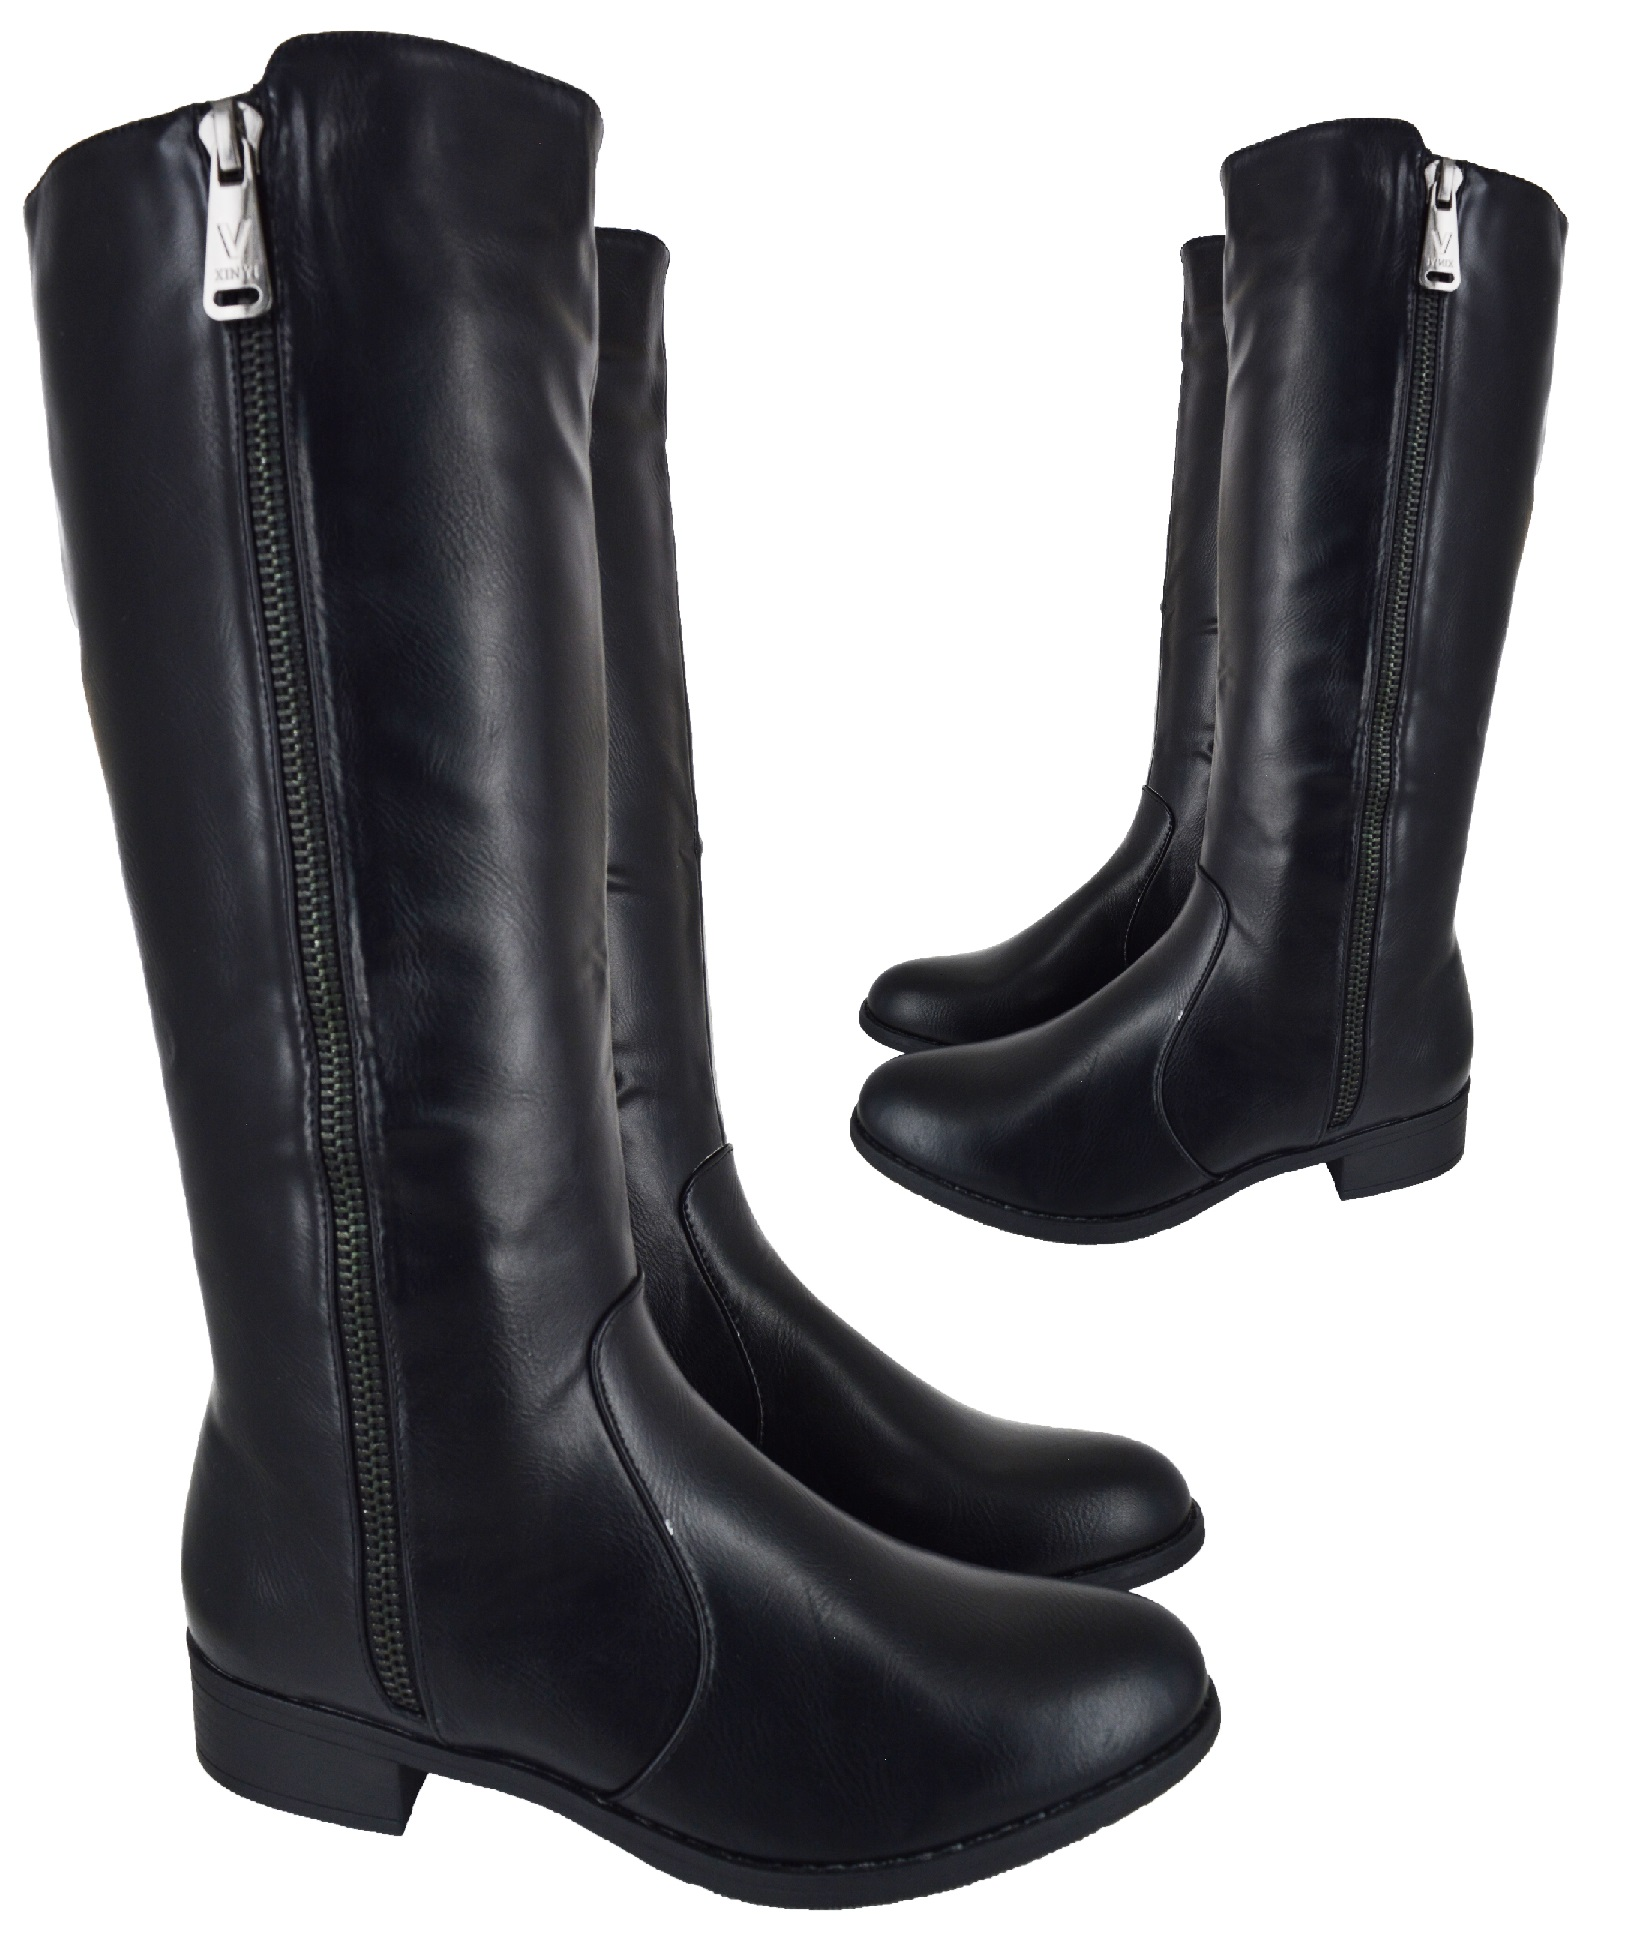 Ladies Womens Large Size Black Knee High Fashion Big Flat Riding Boots New 8 11 Ebay